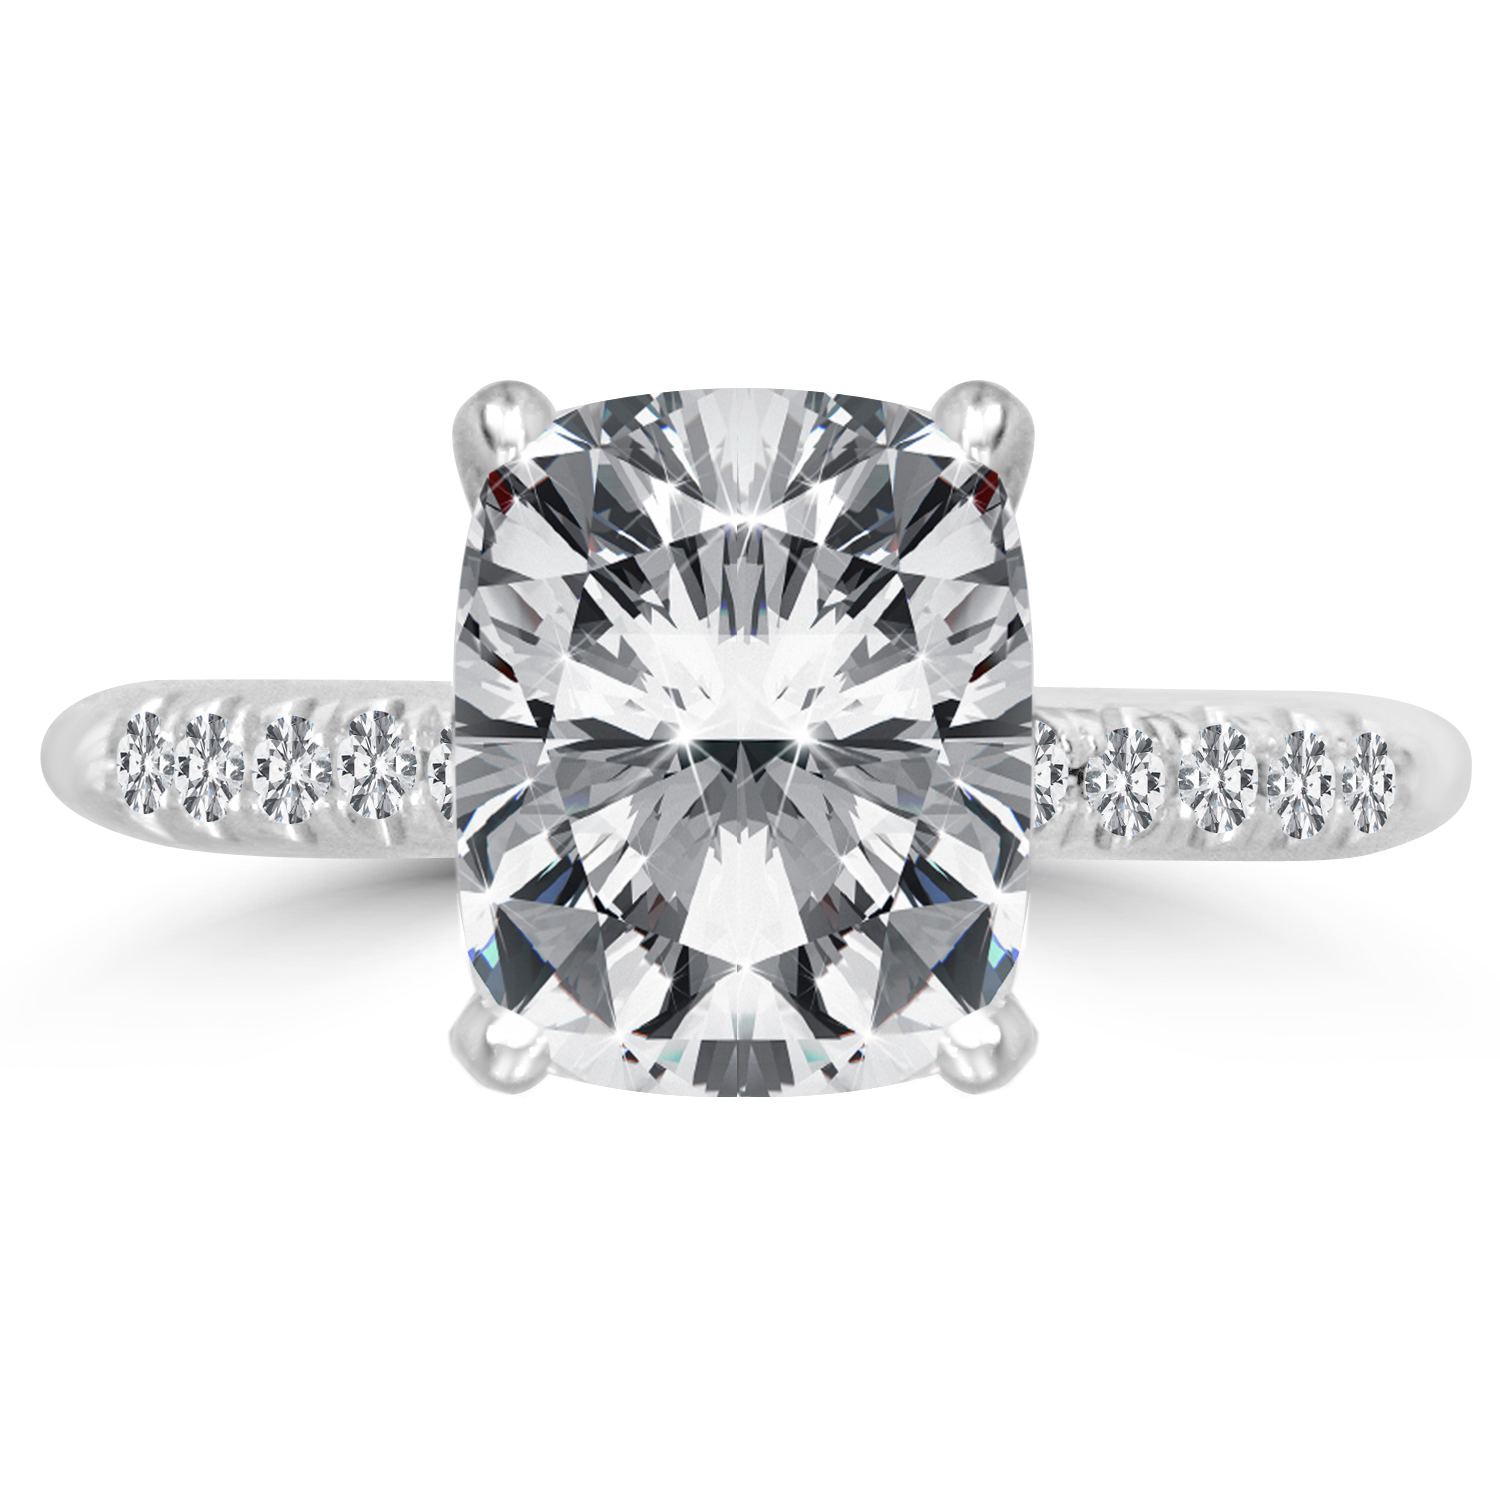 3 2 Ct Cushion Cut Diamond Engagement Ring VS2 F 14K White Gold